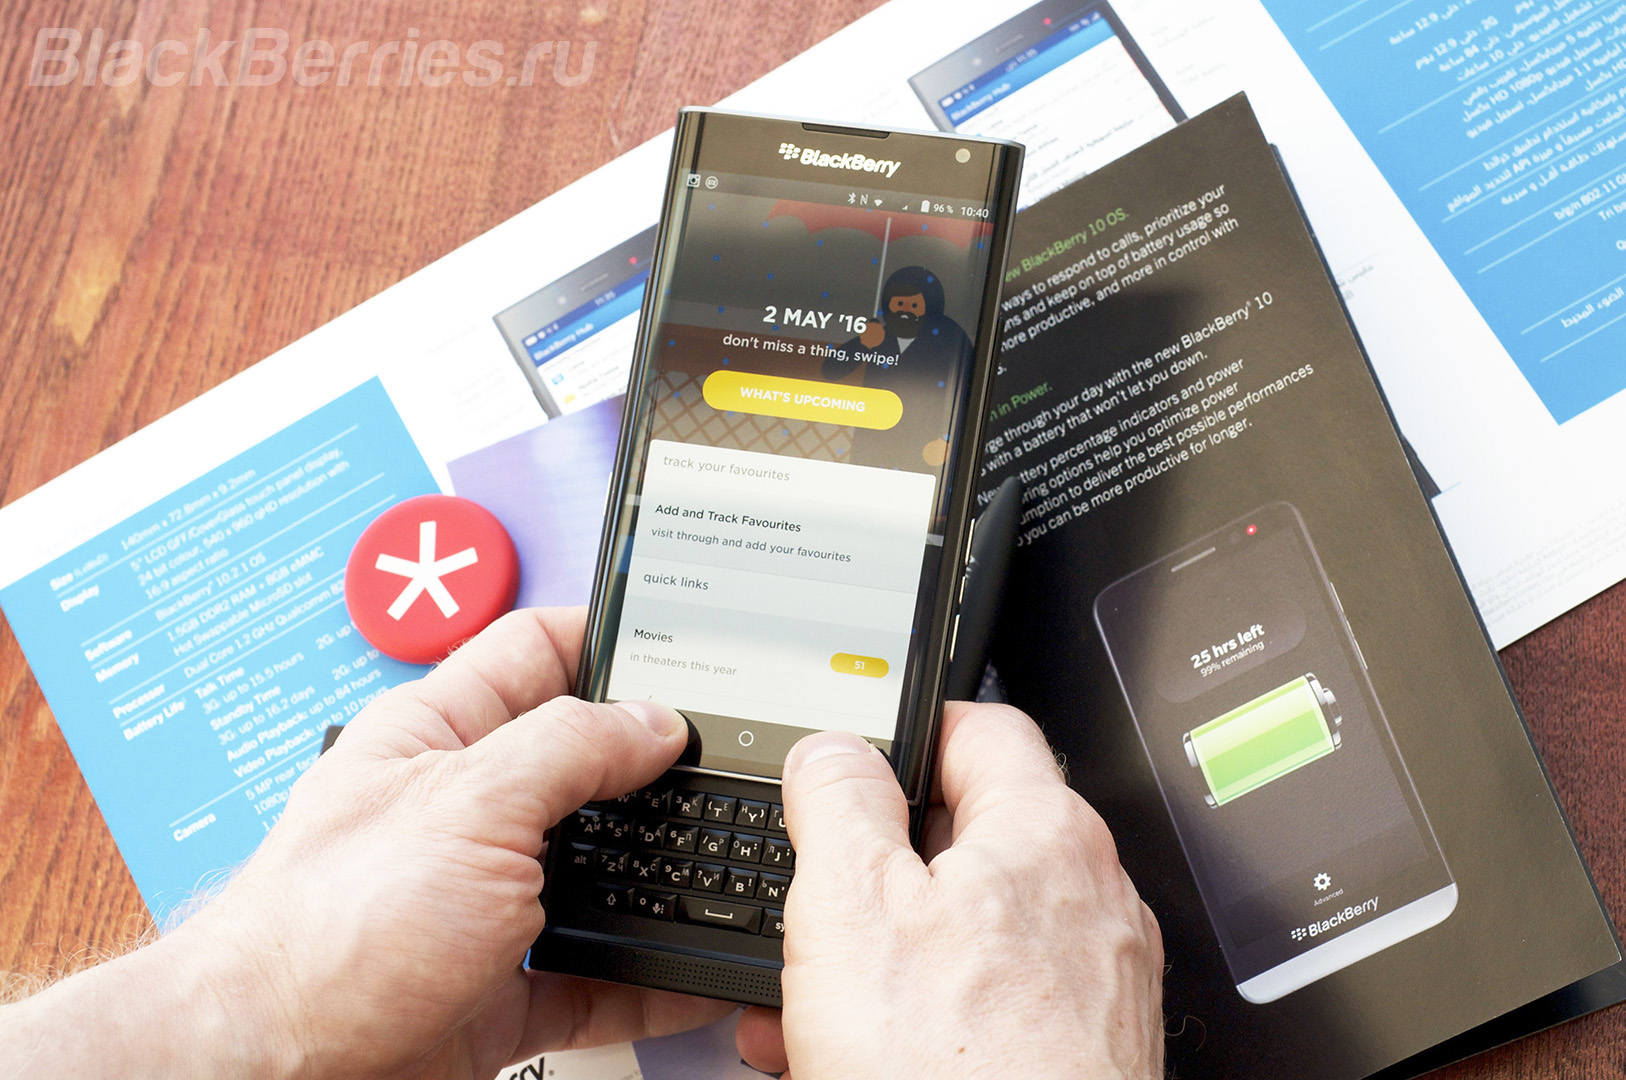 BlackBerry-Priv-5-tips-7